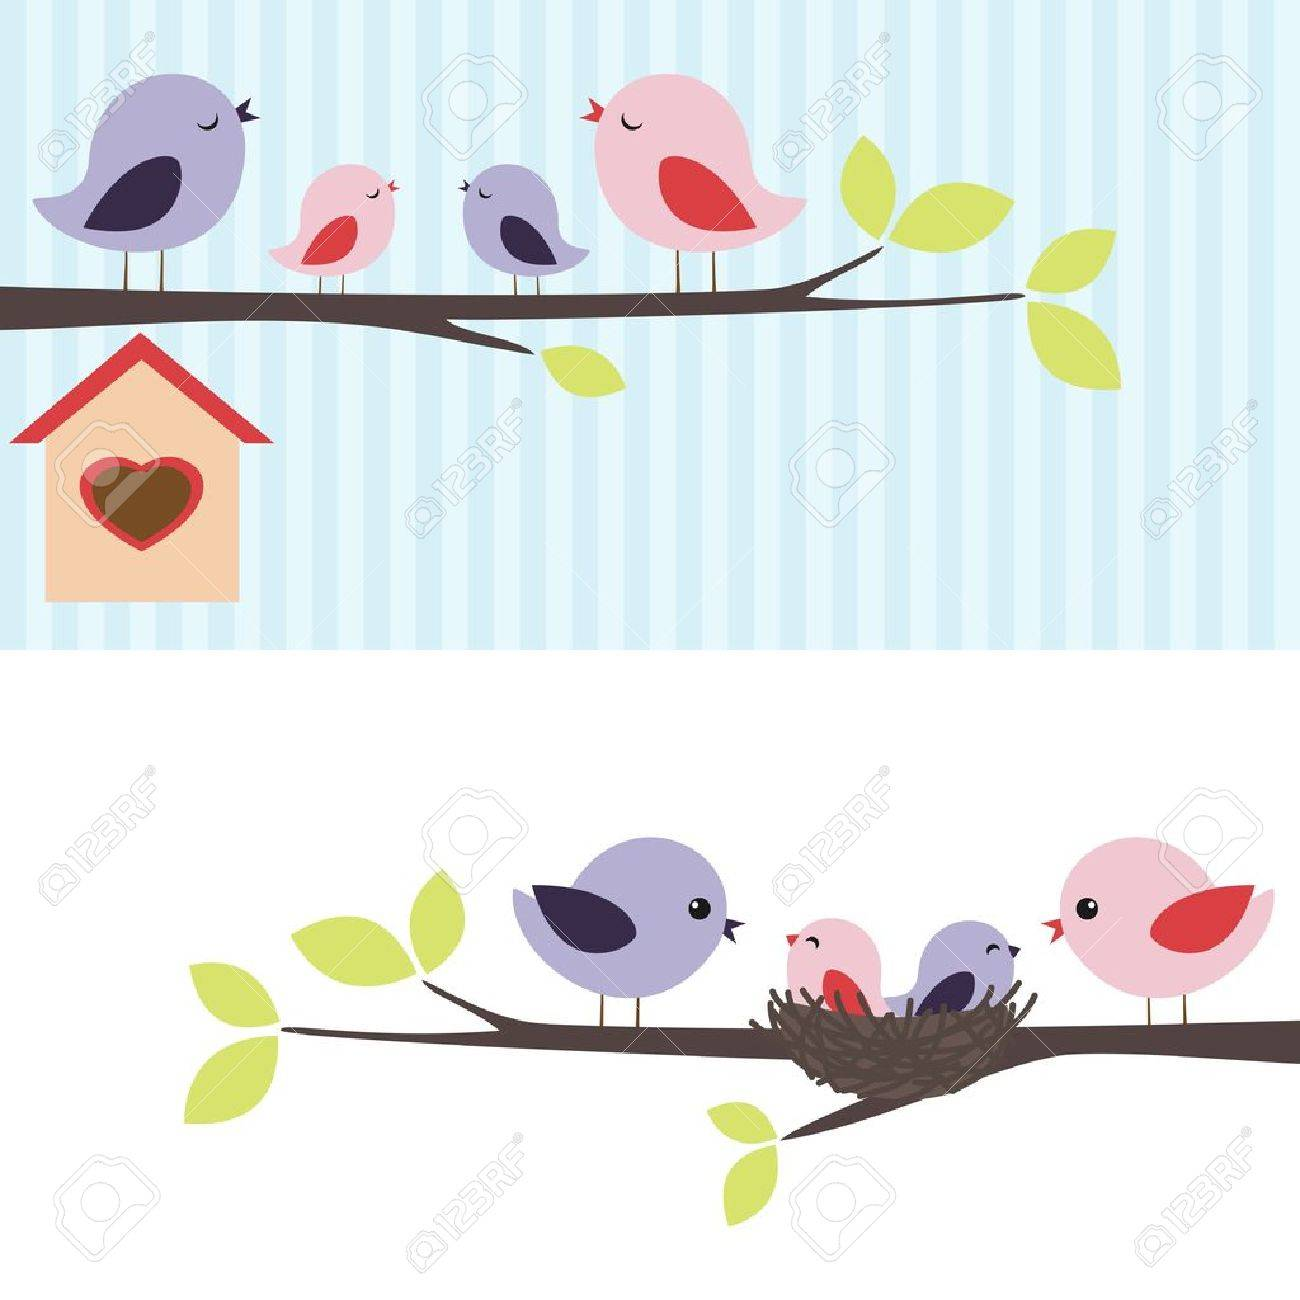 Family of birds sitting on a branch. Two variations. Stock Vector - 12192480